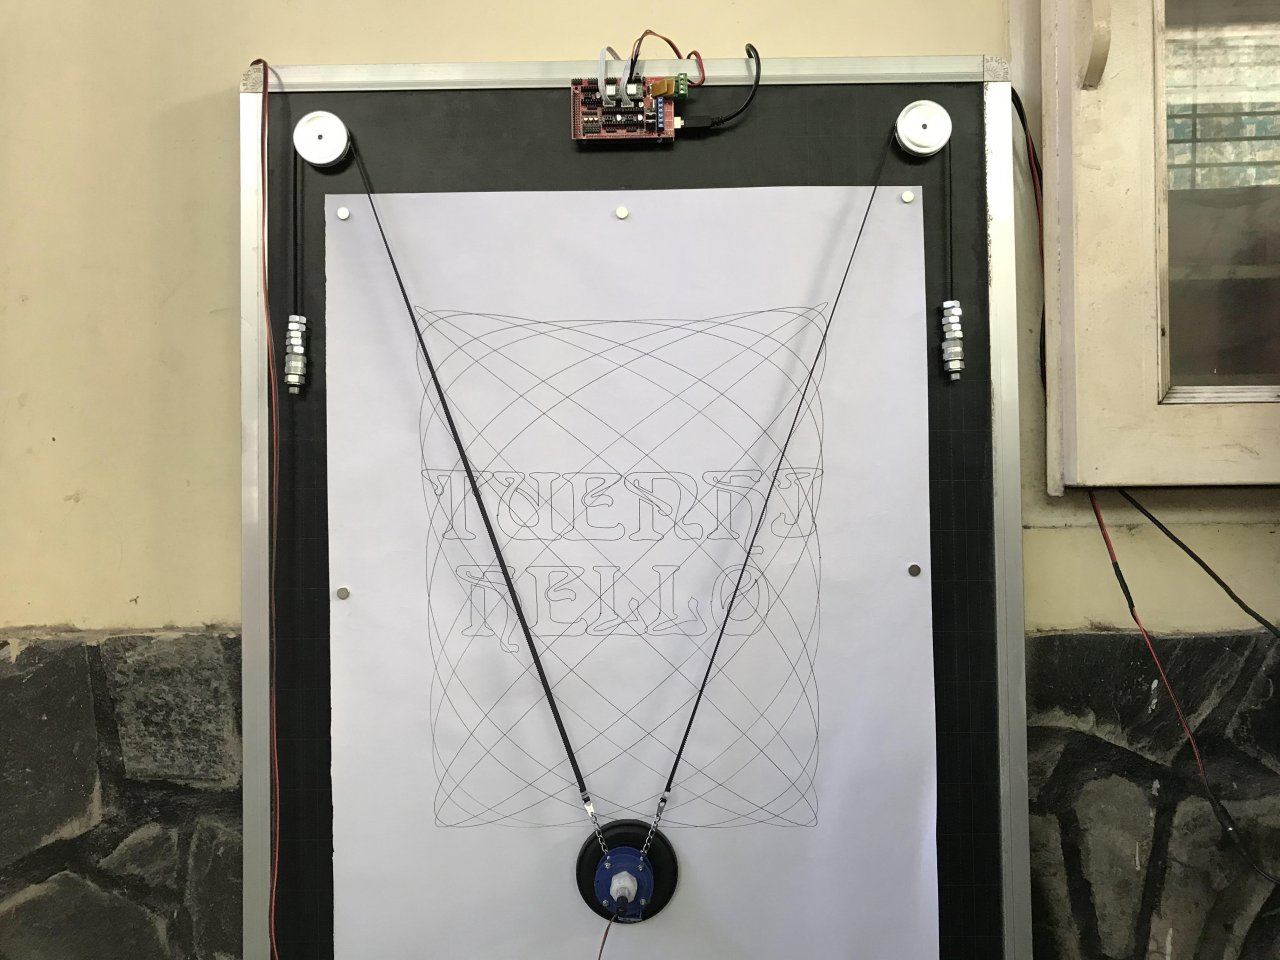 Vertical plotter for drawing on large format paper